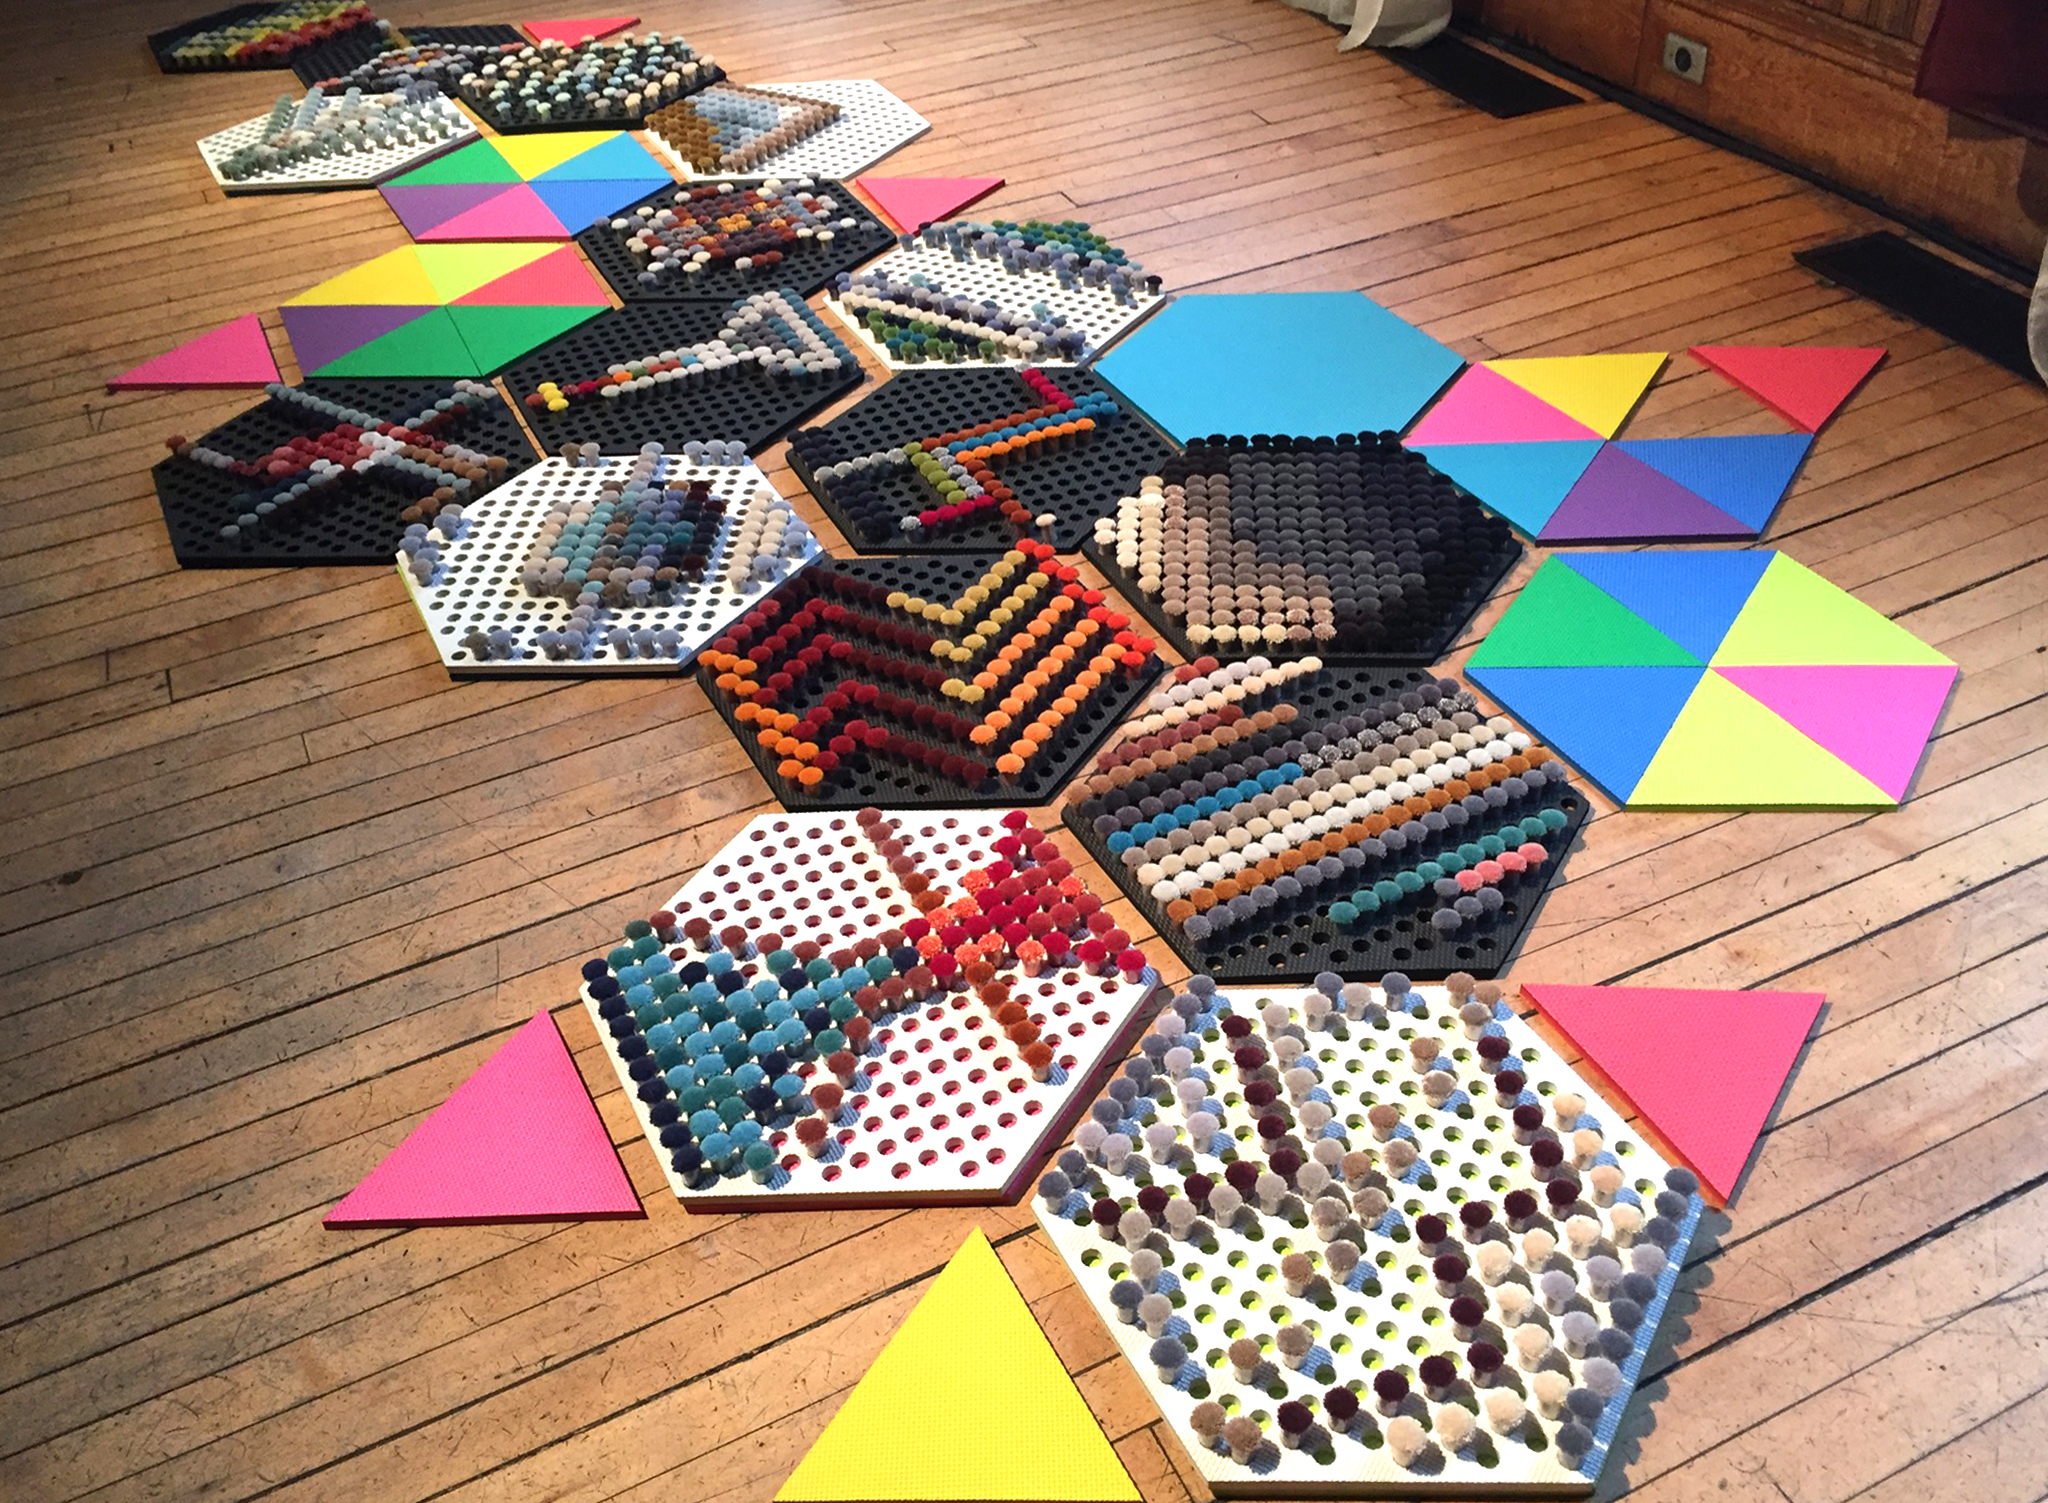 Woven Space  | Art installation made for Come Up To My Room festival put on by Gladstone Hotel | An interactive art experience where guests were invited to create patterns with the carpet poms | 2017